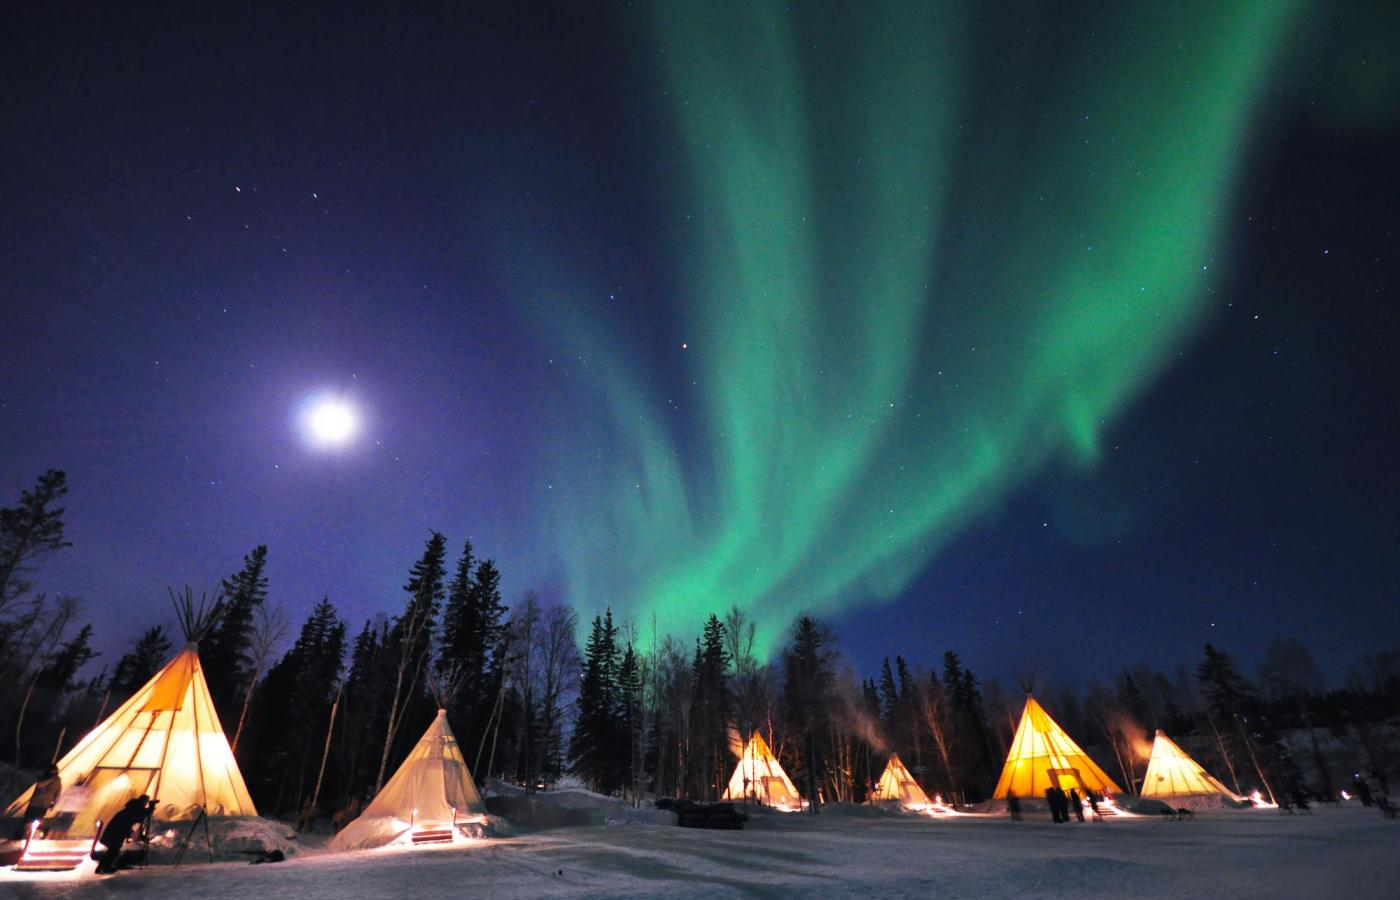 The green northern lights dance above glowing teepees in the snow